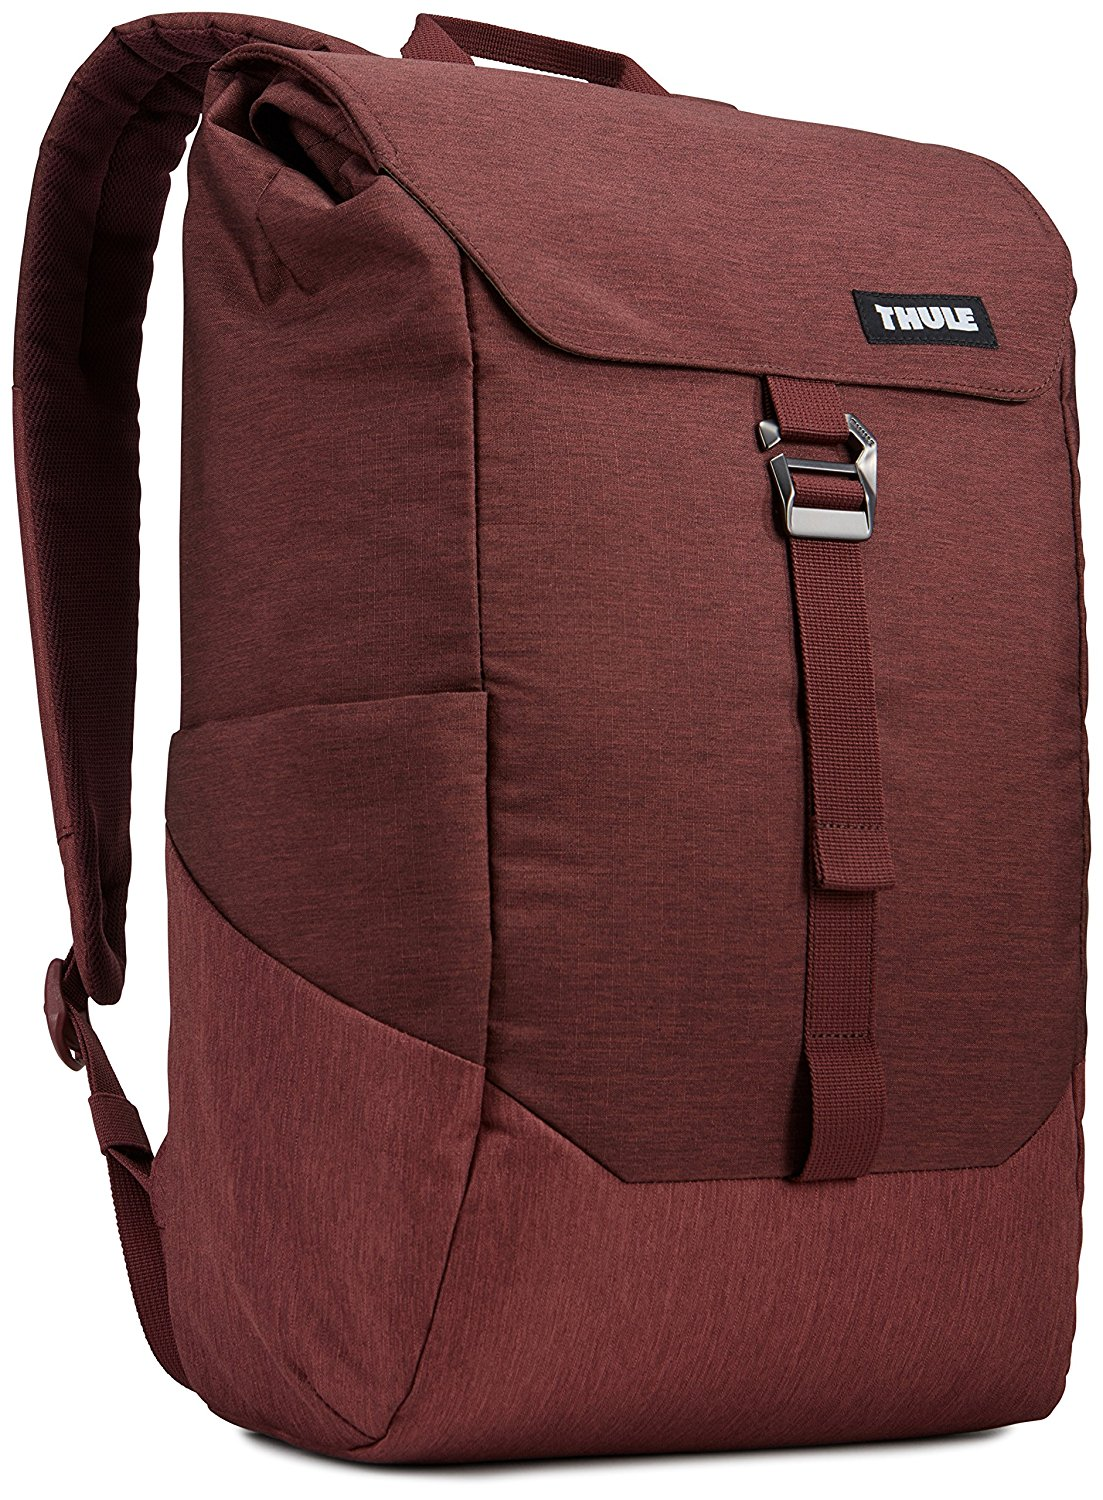 Рюкзак Thule Lithos Backpack 16L (Dark Burgundy)